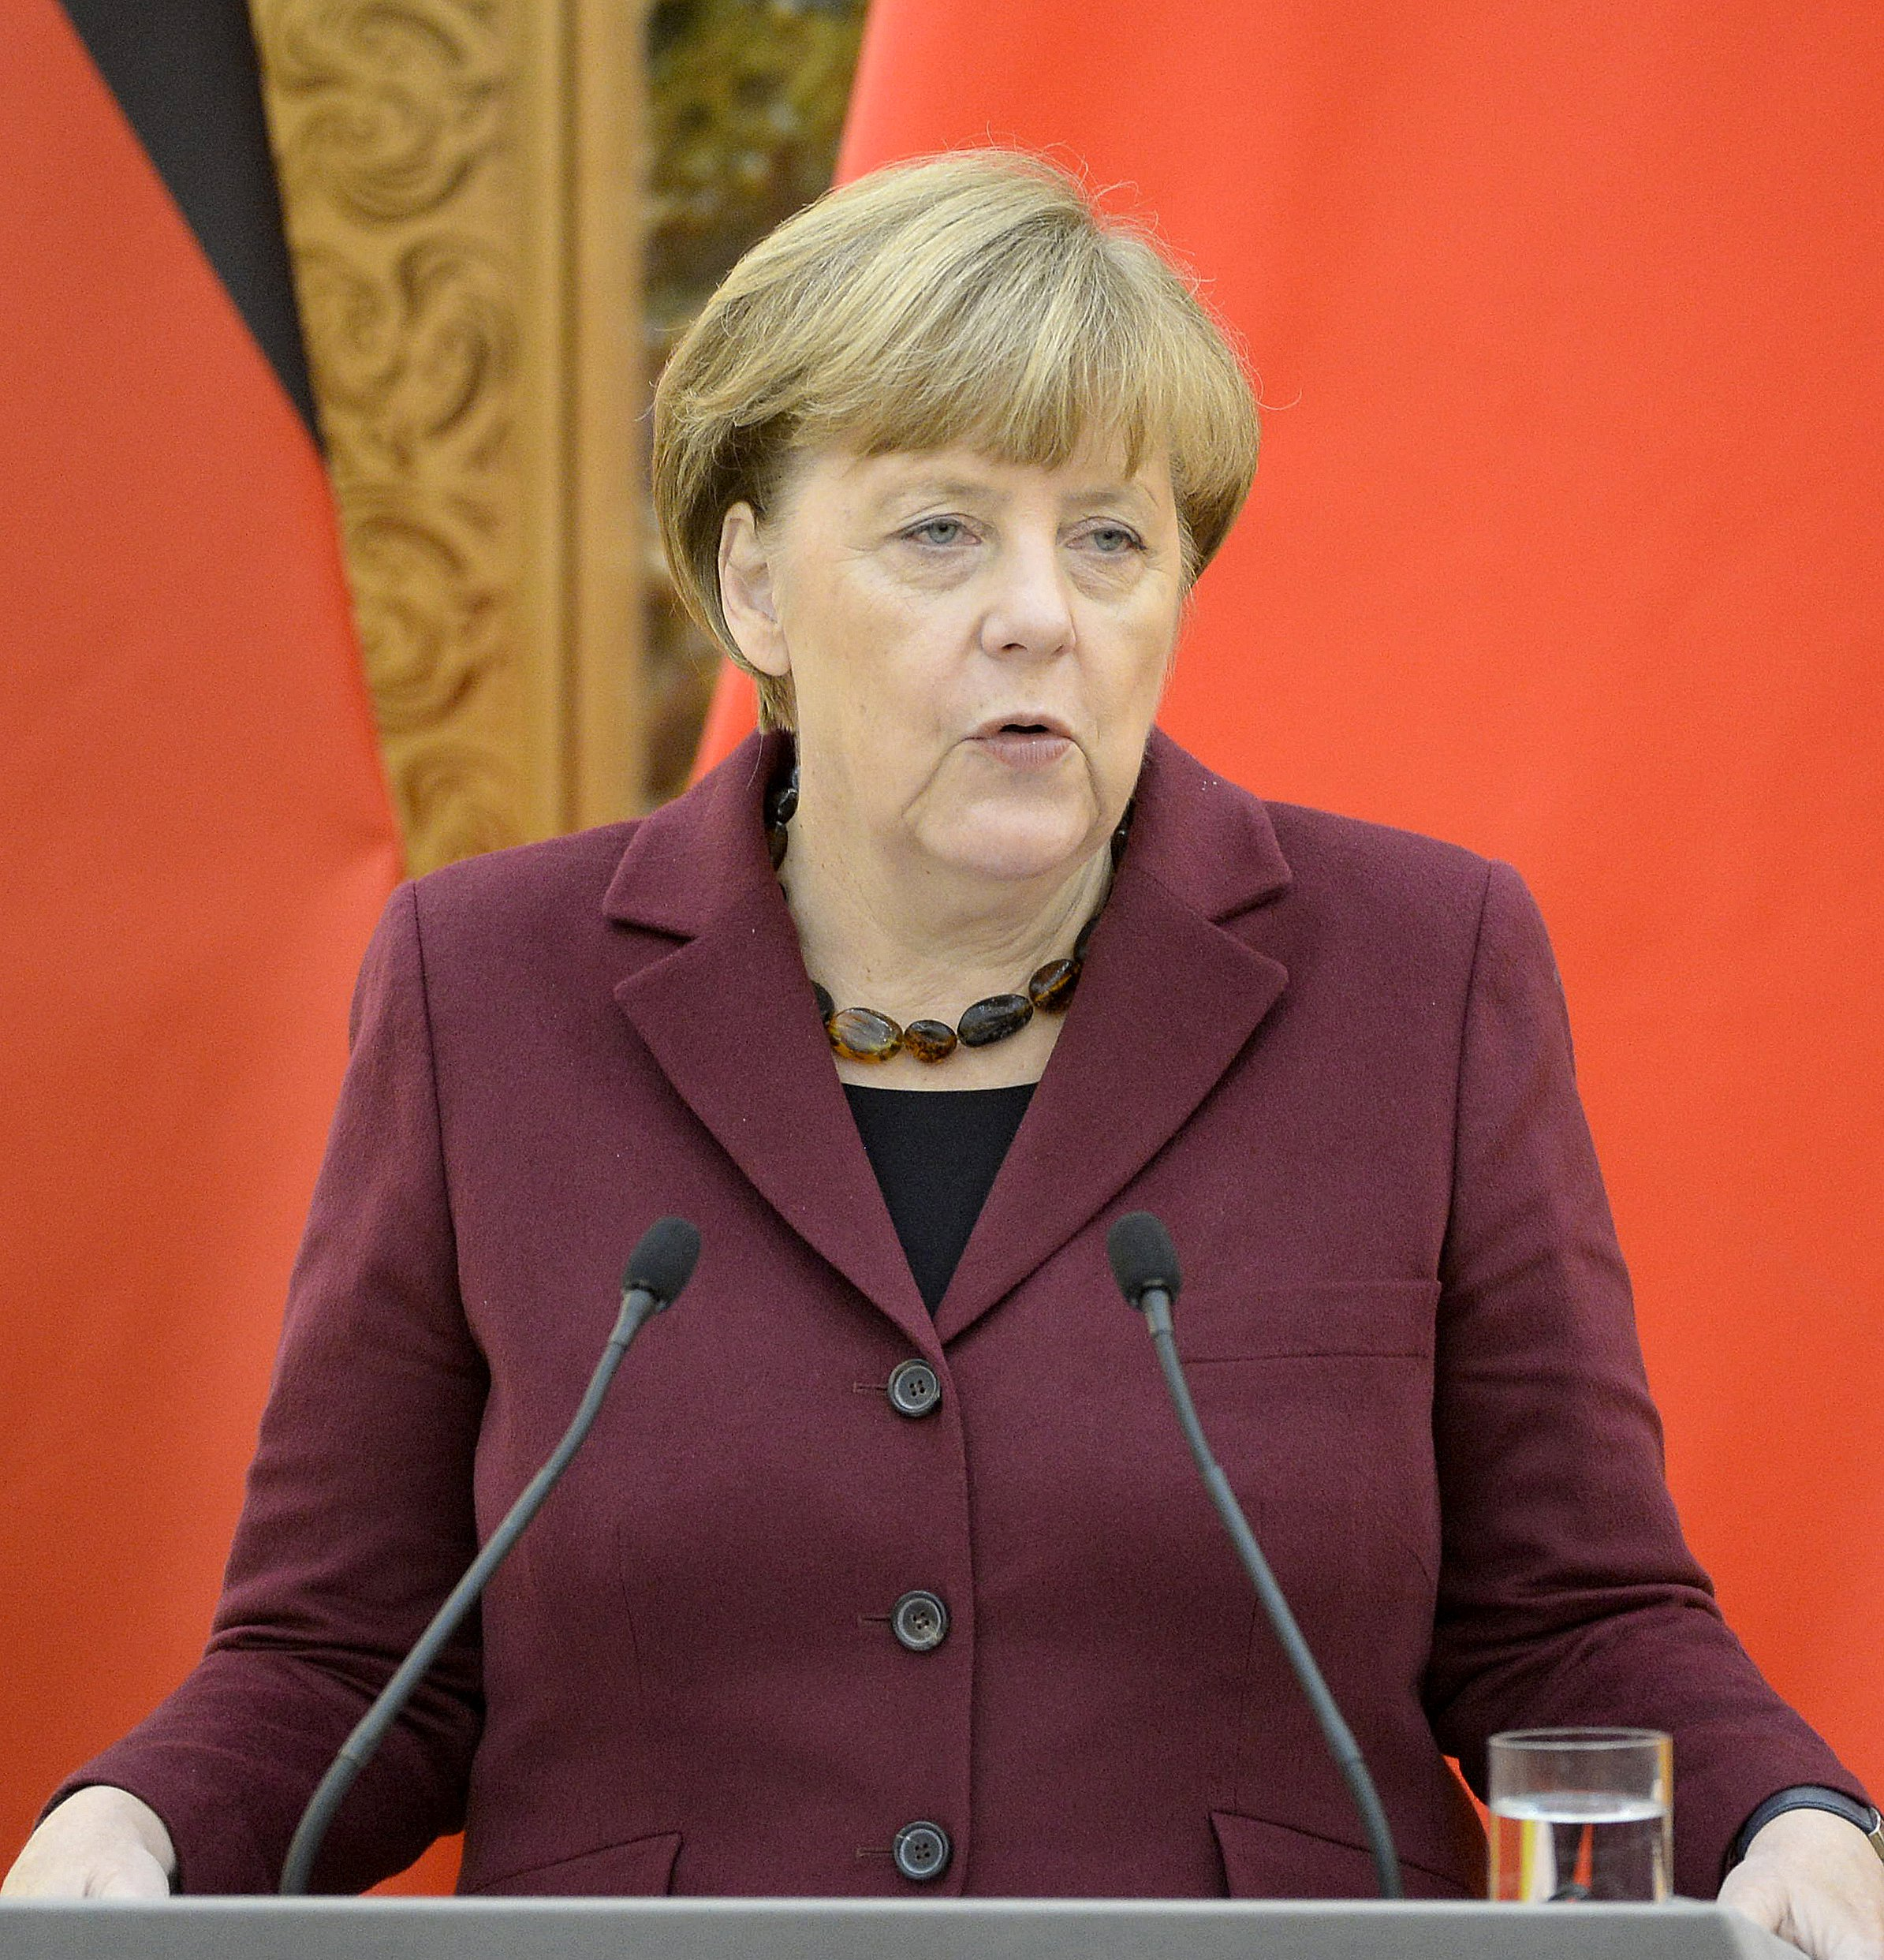 German Chancellor Angela Merkel speaks during a joint news conference with Chinese Premier Li Keqiang at the Great Hall of the People in Beijing October 29, 2015. Photo: Reuters